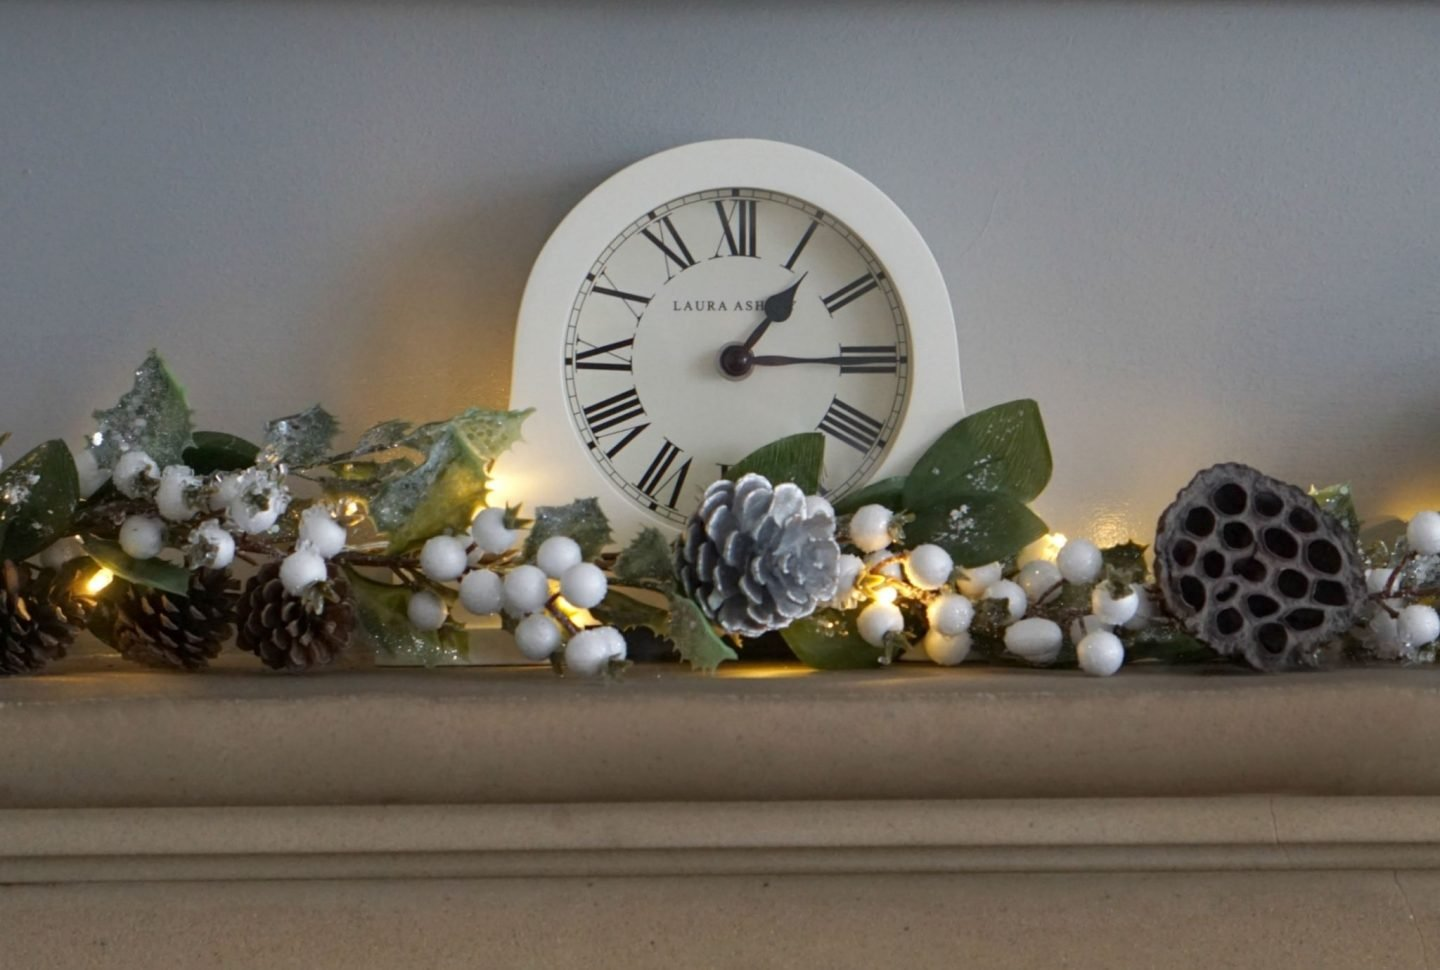 Cream Mantle Clock from Laura Ashely www.extraordinarychaos.com